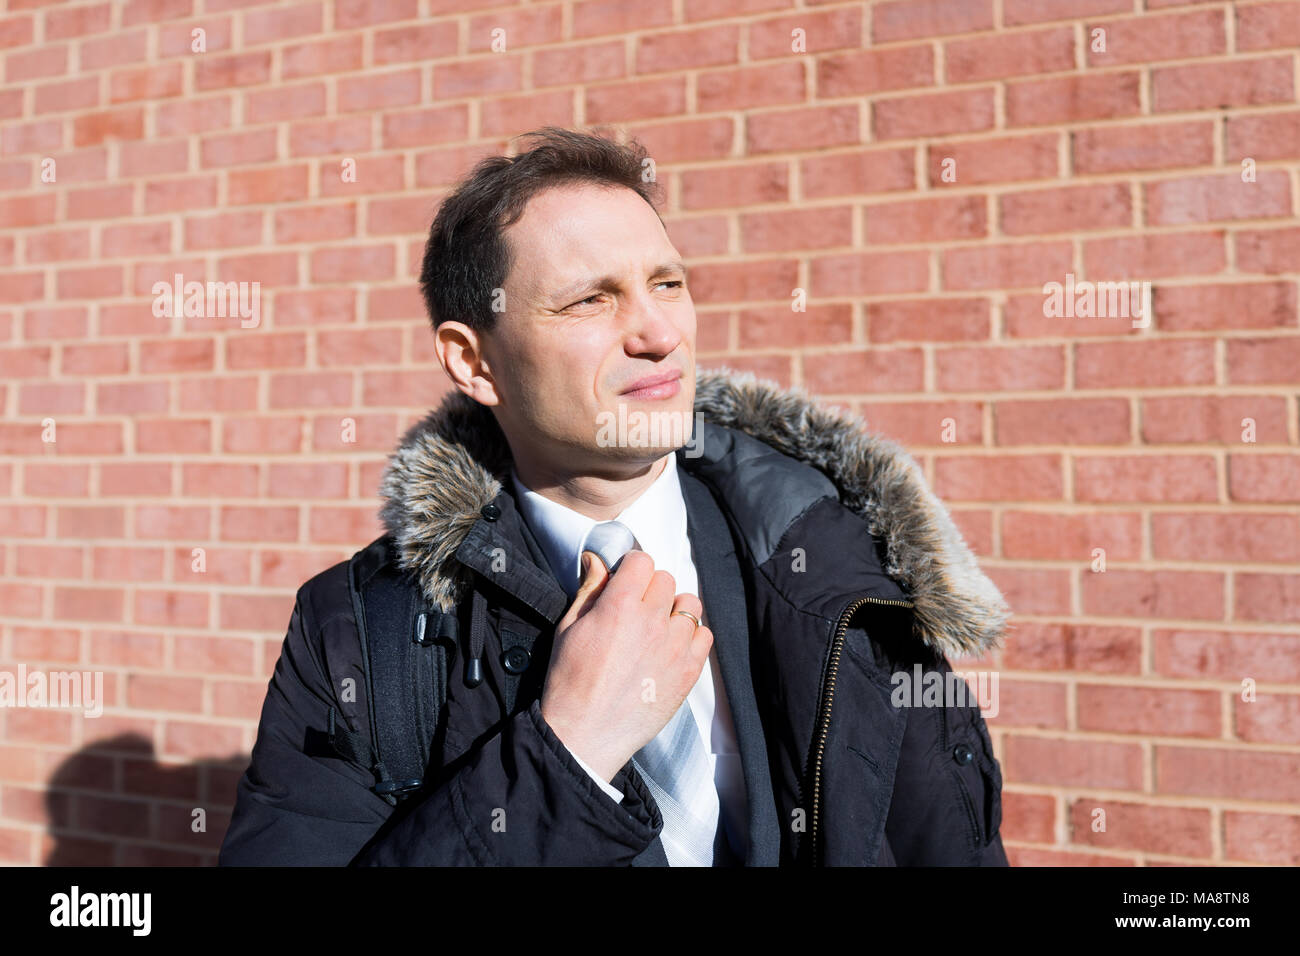 Handsome, attractive young serious unhappy stern businessman closeup face portrait standing in front of brick wall, fixing tie, in suit and tie on int - Stock Image